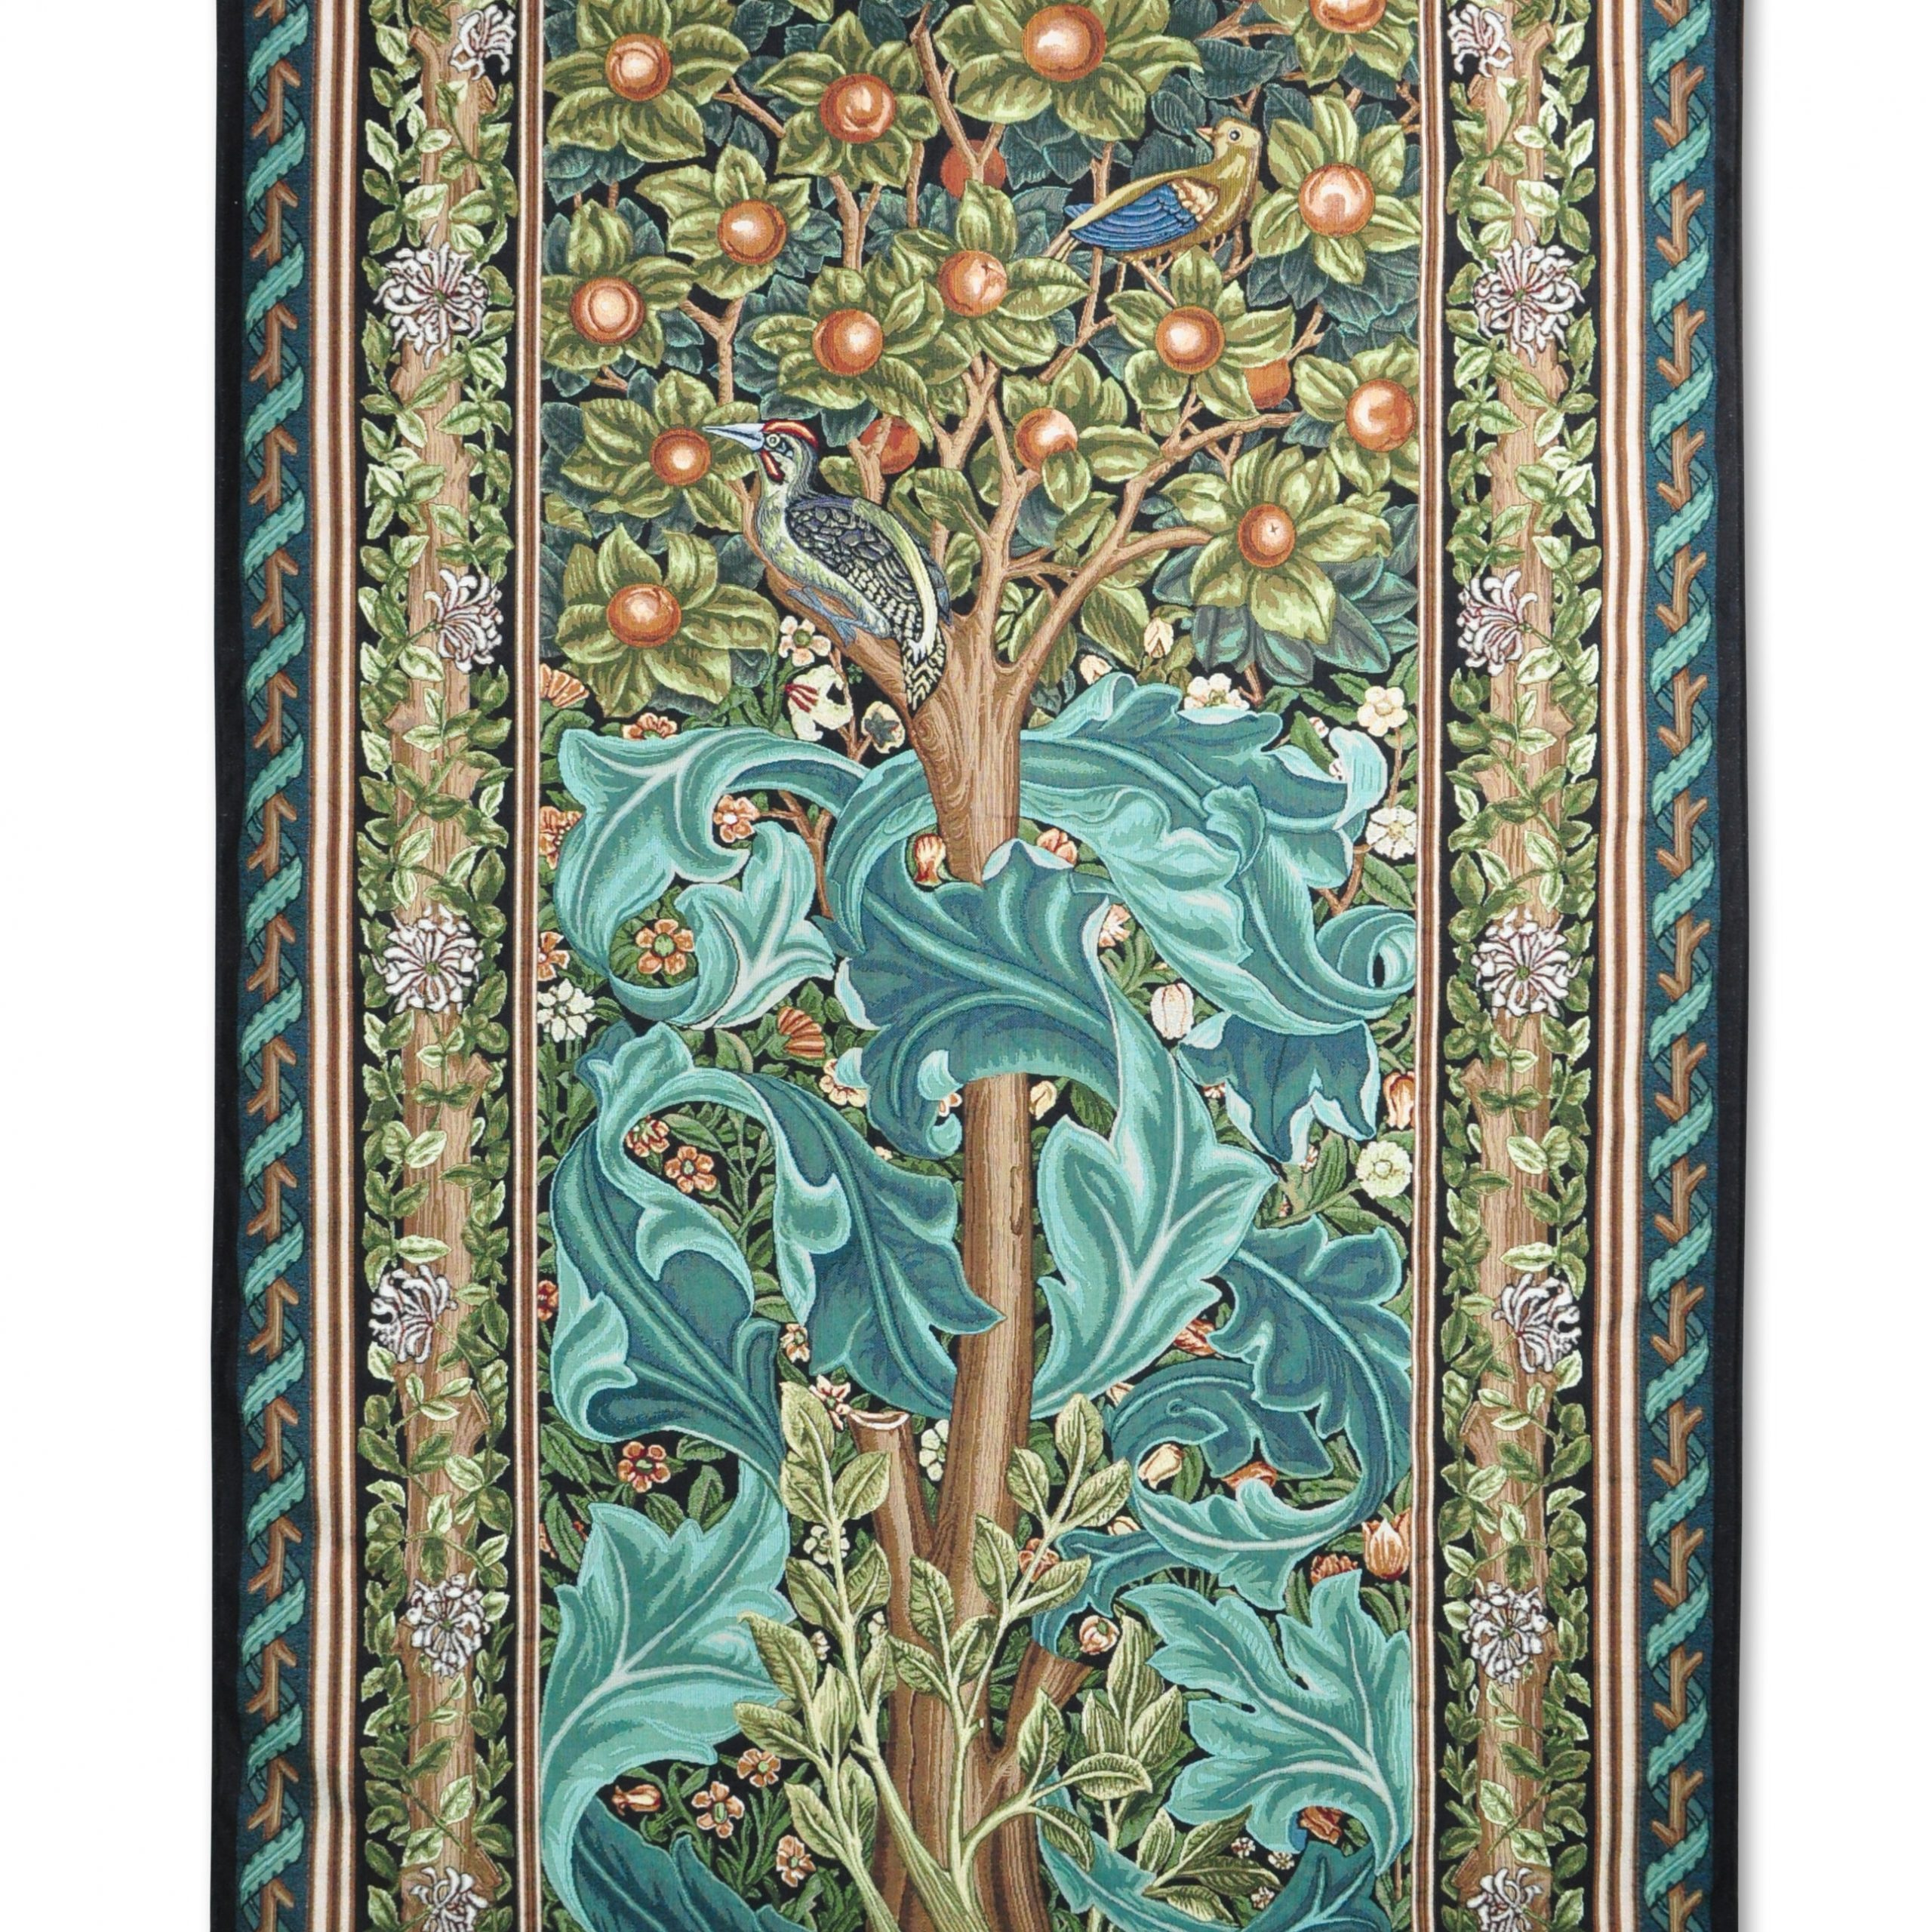 Blended Fabric Peacock European Tapestries Pertaining To Latest Woodpecker Iiwilliam Morris Tapestry (View 10 of 20)